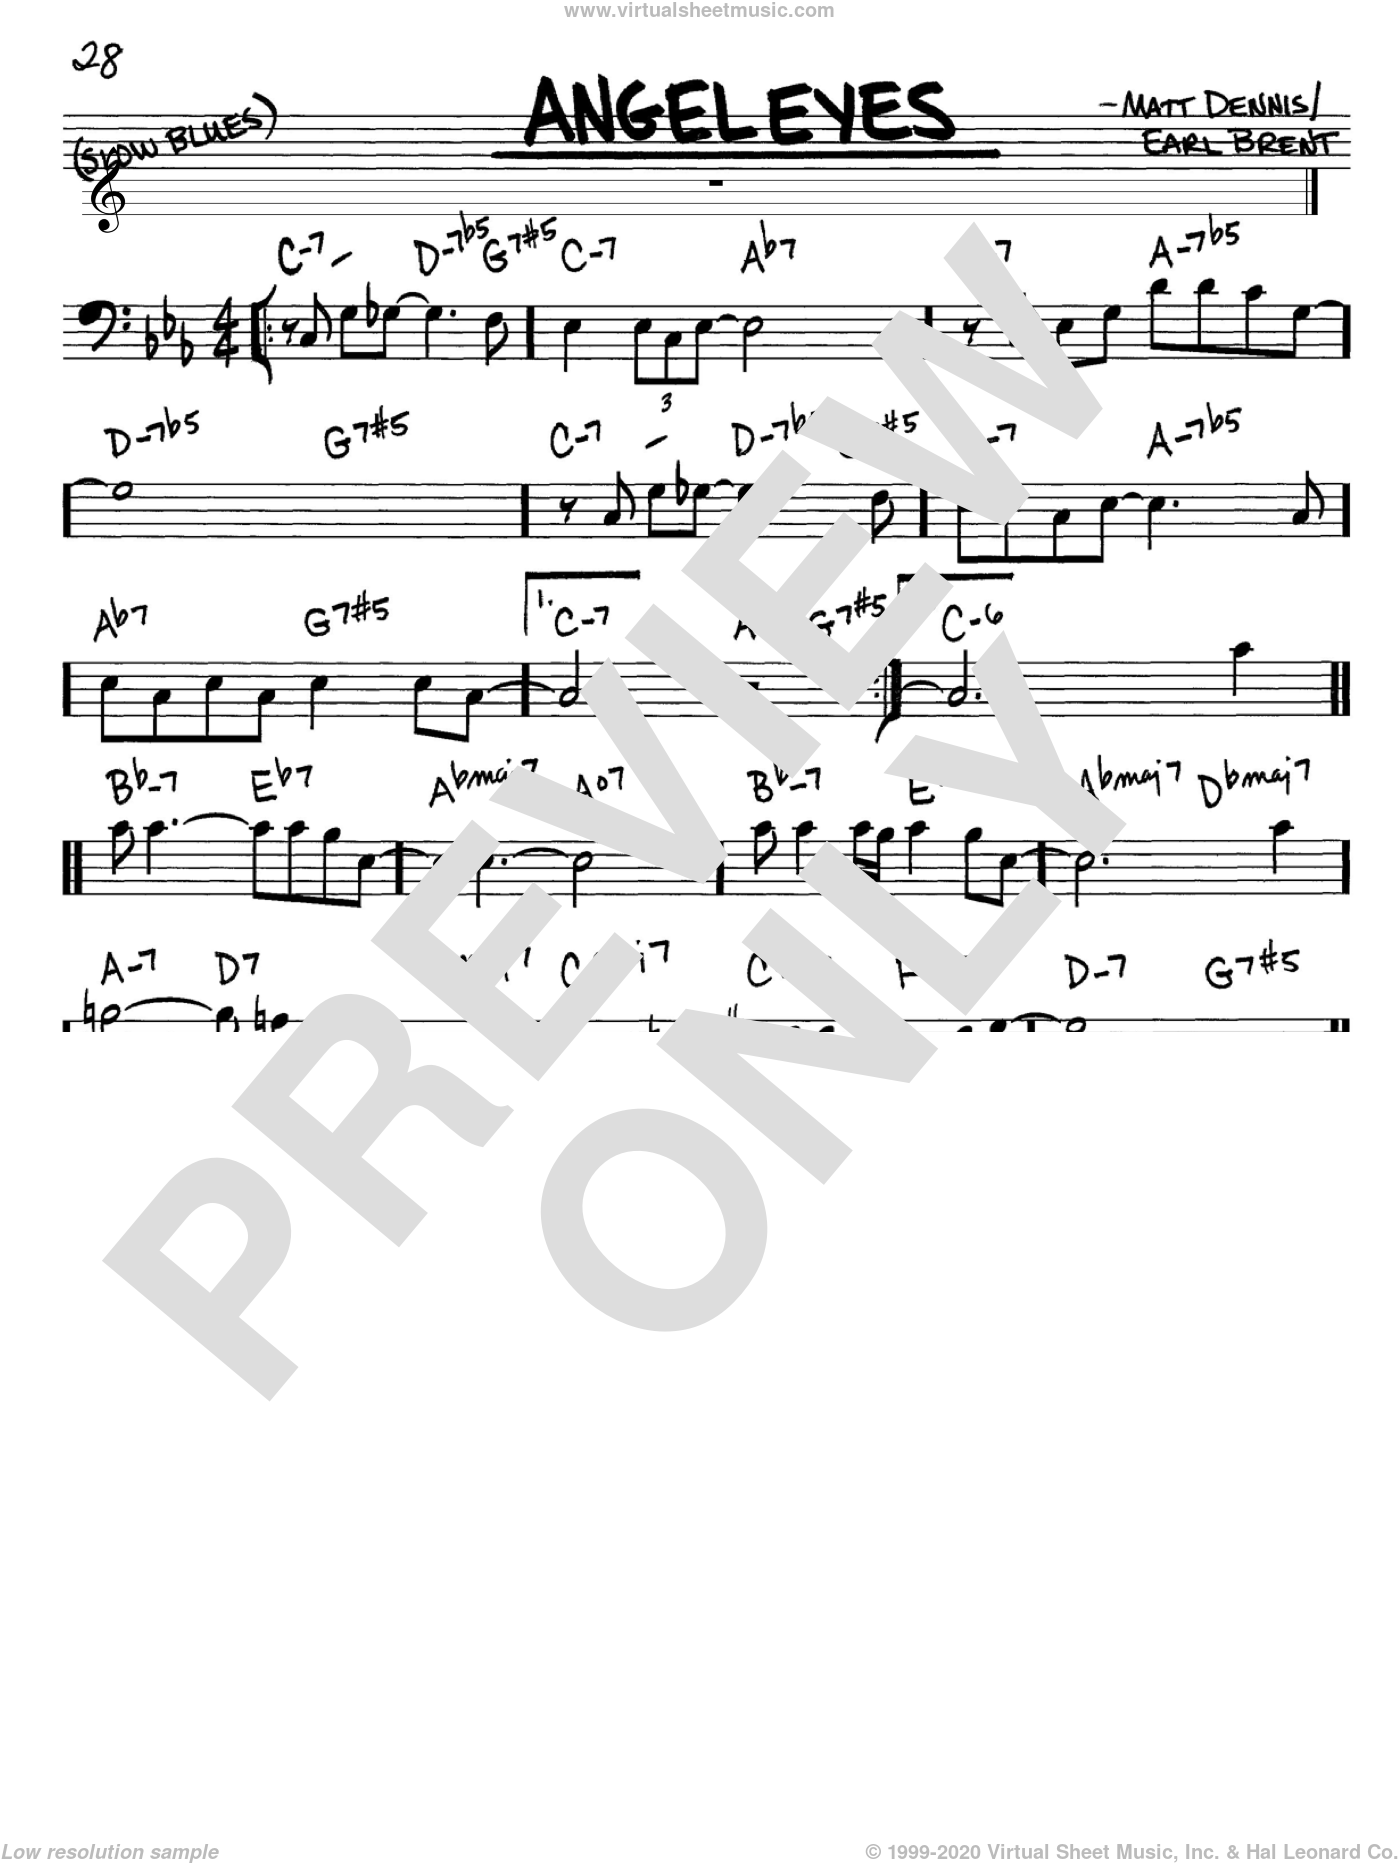 Angel Eyes sheet music for voice and other instruments (Bass Clef ) by Matt Dennis, Frank Sinatra and Earl Brent. Score Image Preview.